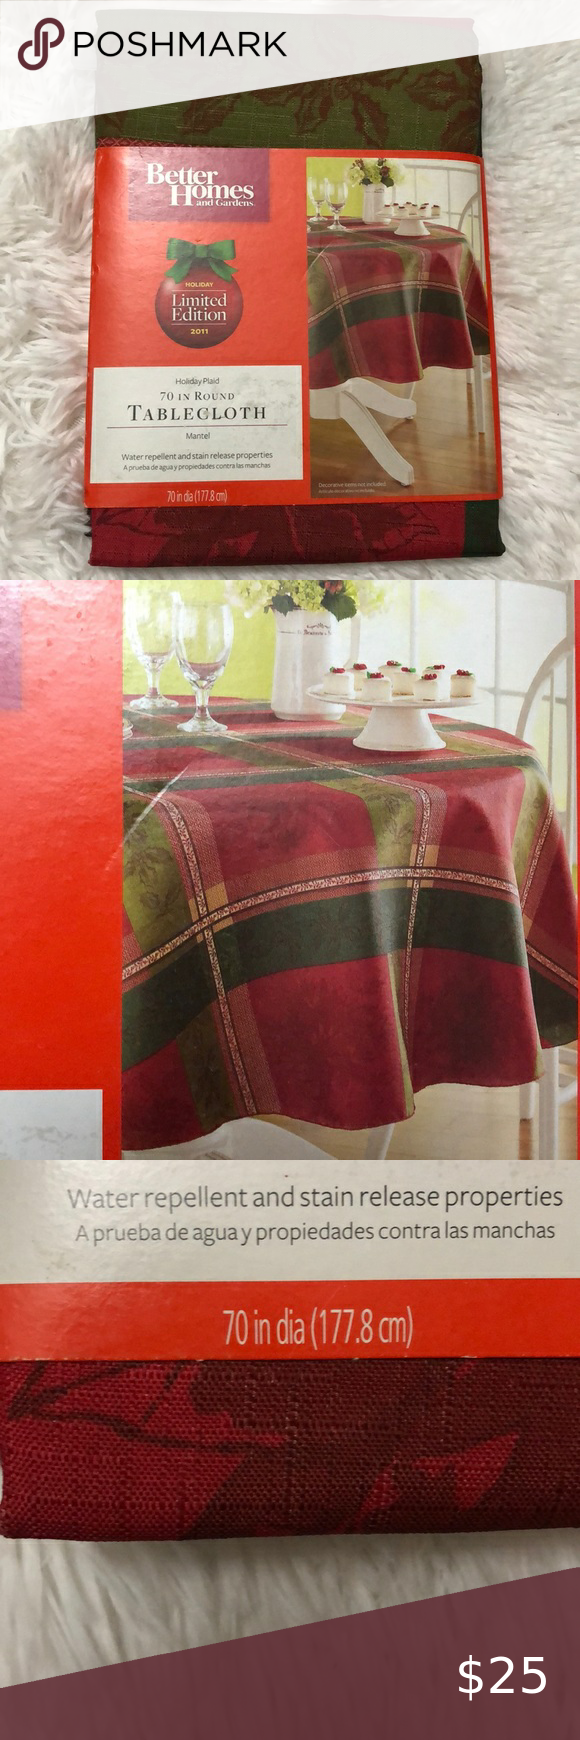 31d265e827adf6a9b2aac1cb3eeaaf9d - Better Homes And Gardens Holiday Edition Tablecloth